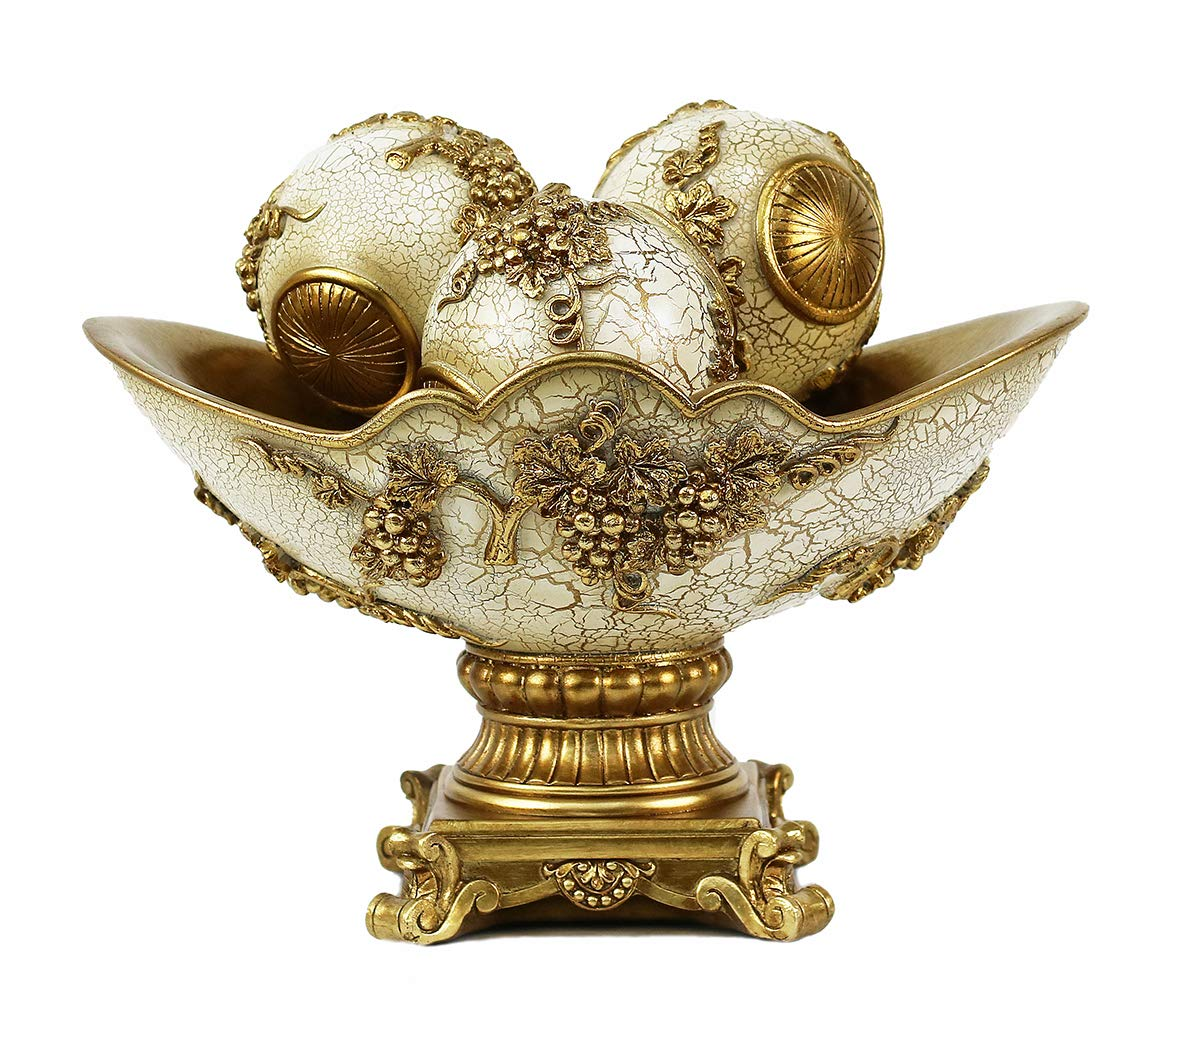 Emenest Decorative Table Centerpiece | Home Decor Bowl and Orbs Set of 4 | Prime Gifting Idea | Mantle with Spheres| House Decorations Accents for Dining or Living Room |Gift Boxed – Cream & Gold